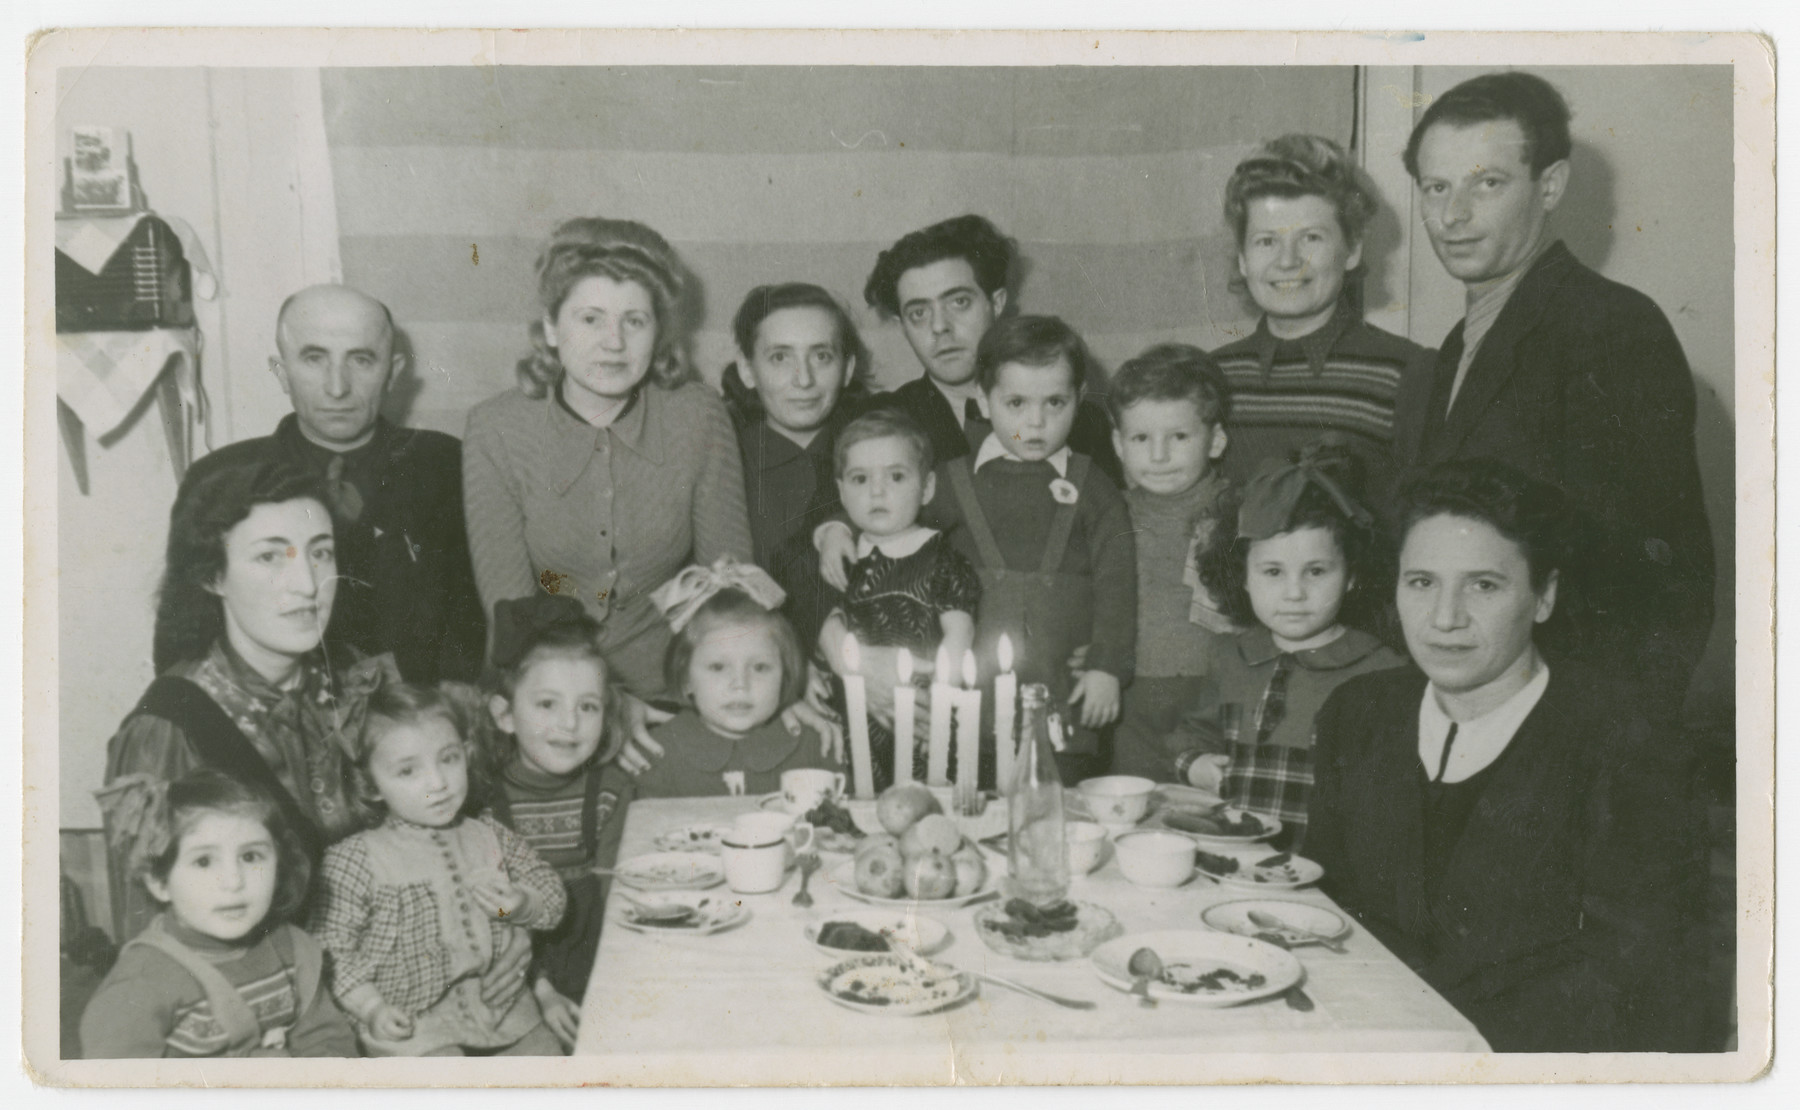 Adults and children celebrate in the Schlachtensee displaced persons camp.  [This is possibly Joseph Fridling's fifth birthday party.]  Among those pictured are standing in the back row (left to right) Abe Fridling (cousin of donor's father with the same name), unidentified, Andzia (Chana) Fridling, Gitla Fridling, Abe Fridling, Joseph Fridling and Zach Altman (far right).